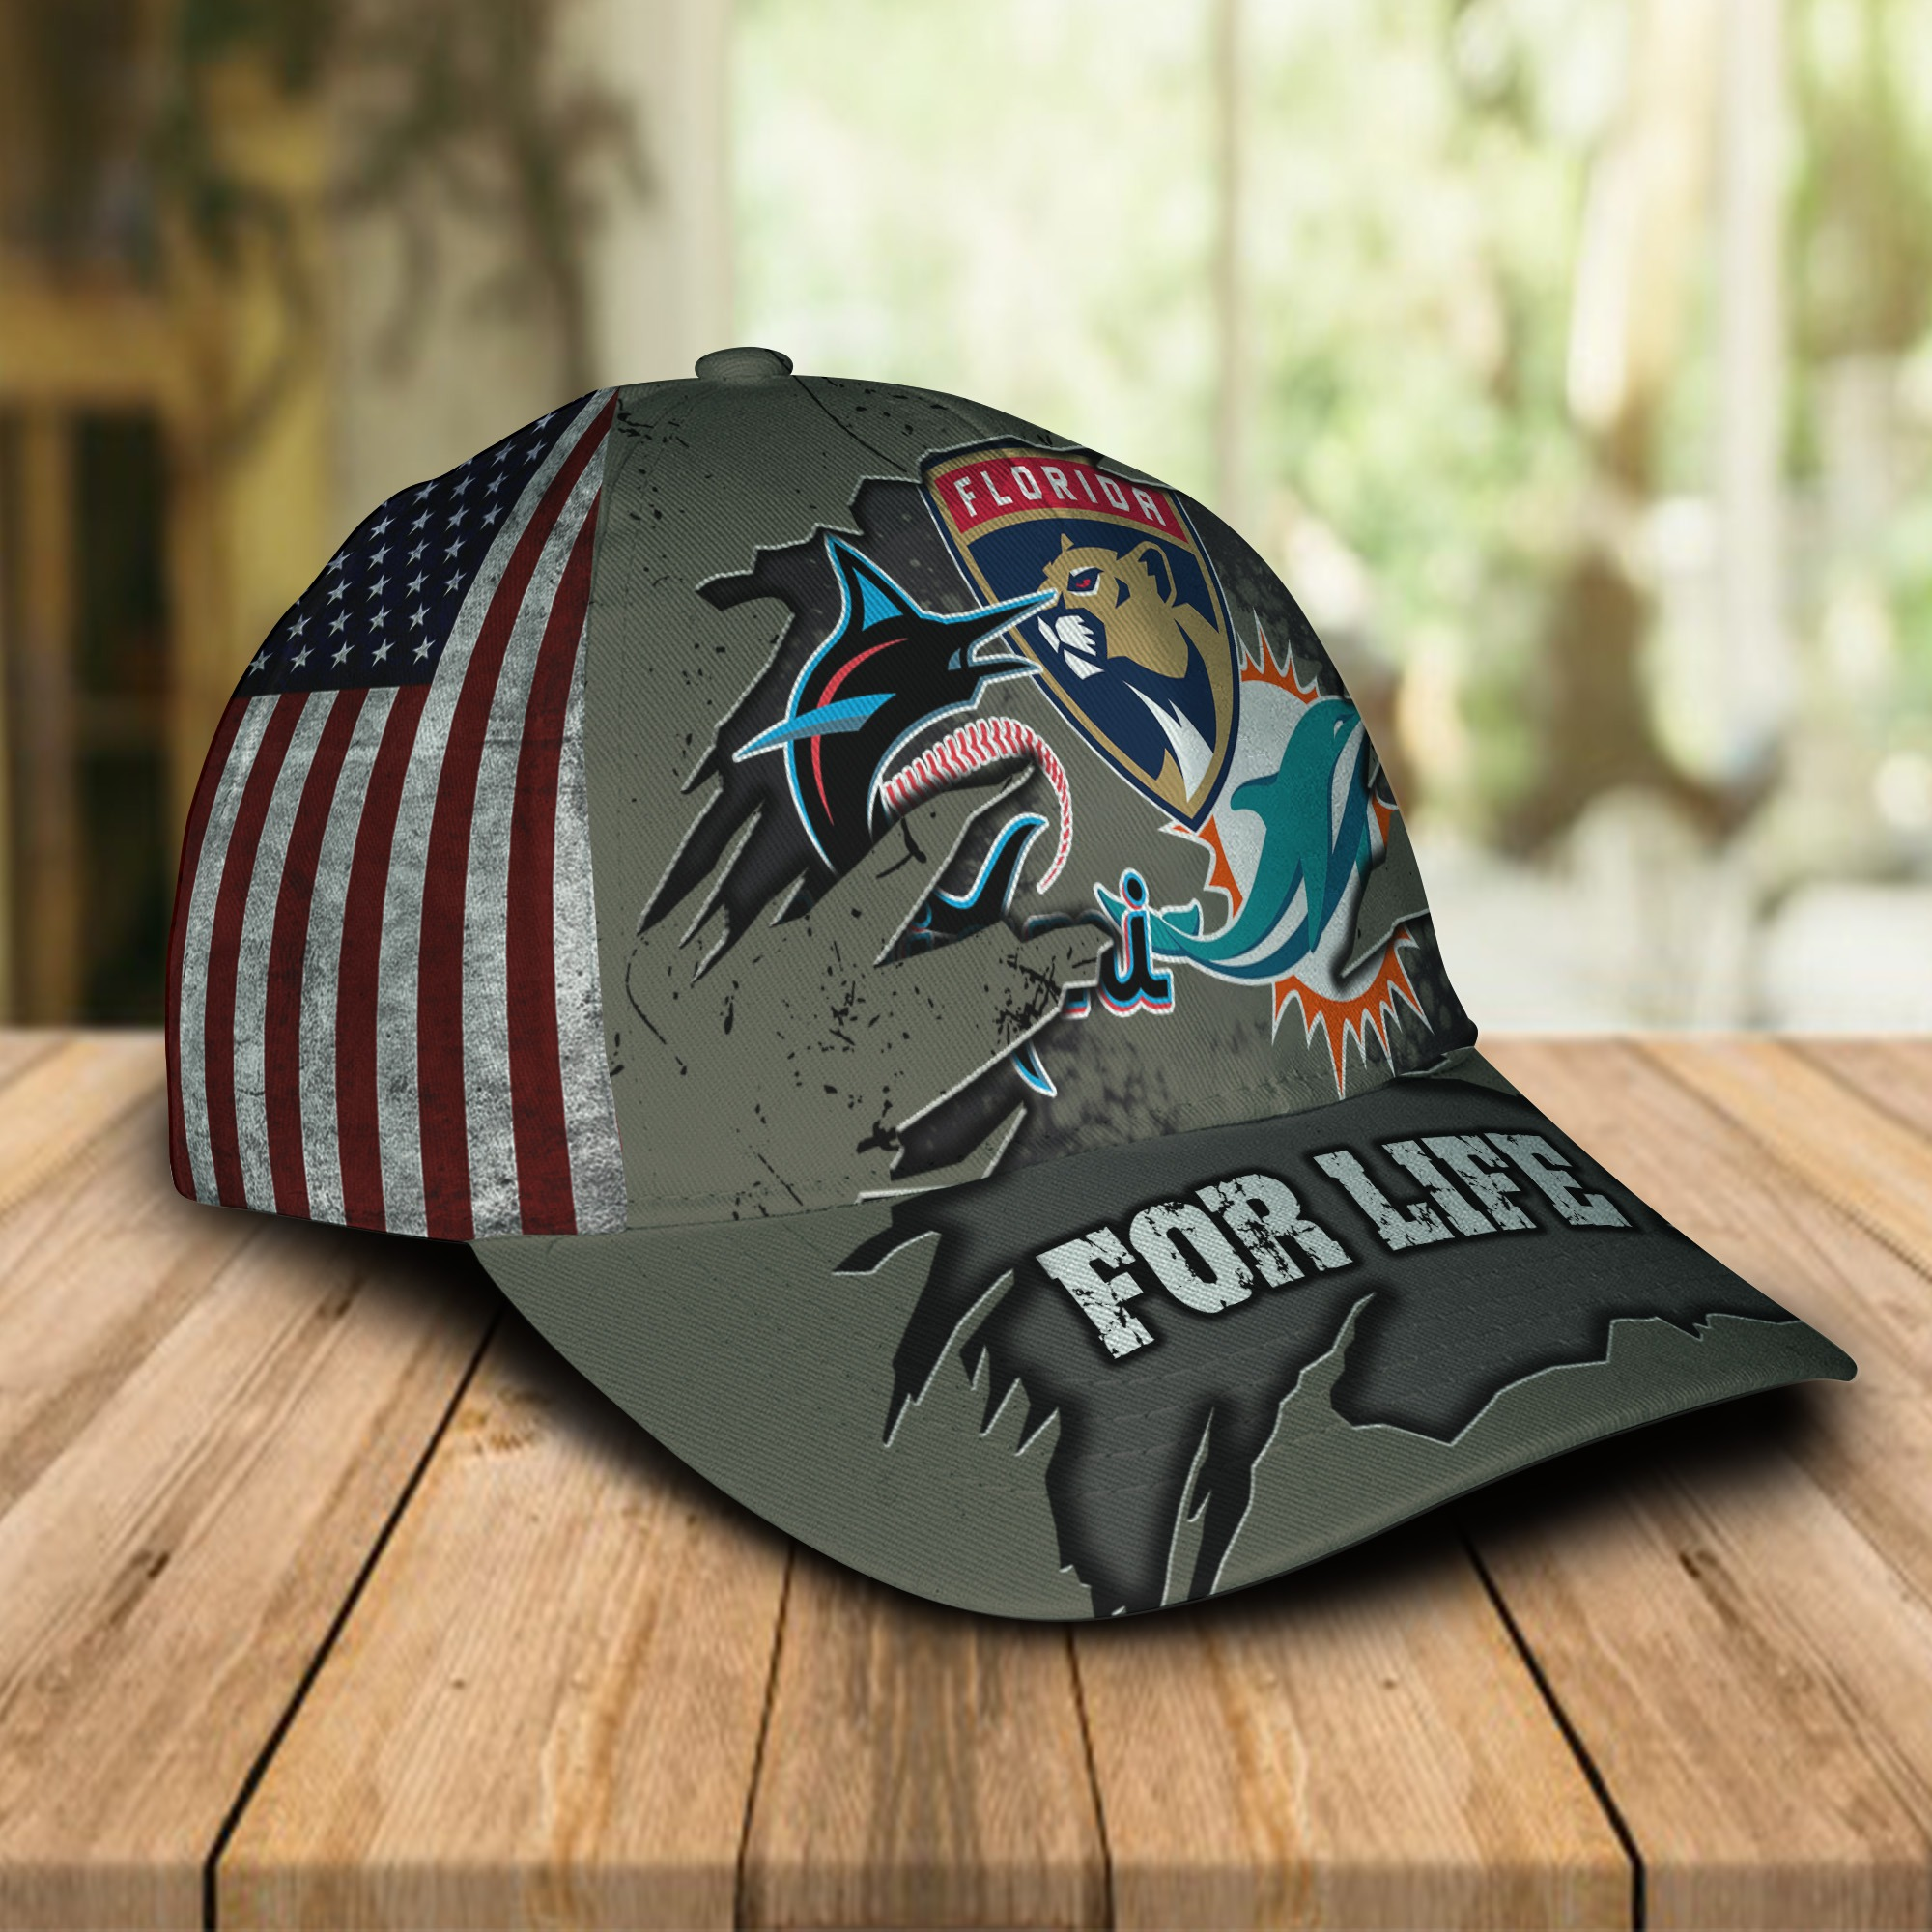 Miami Dolphins Miami Marlins Florida Panthers For Life Cap 1